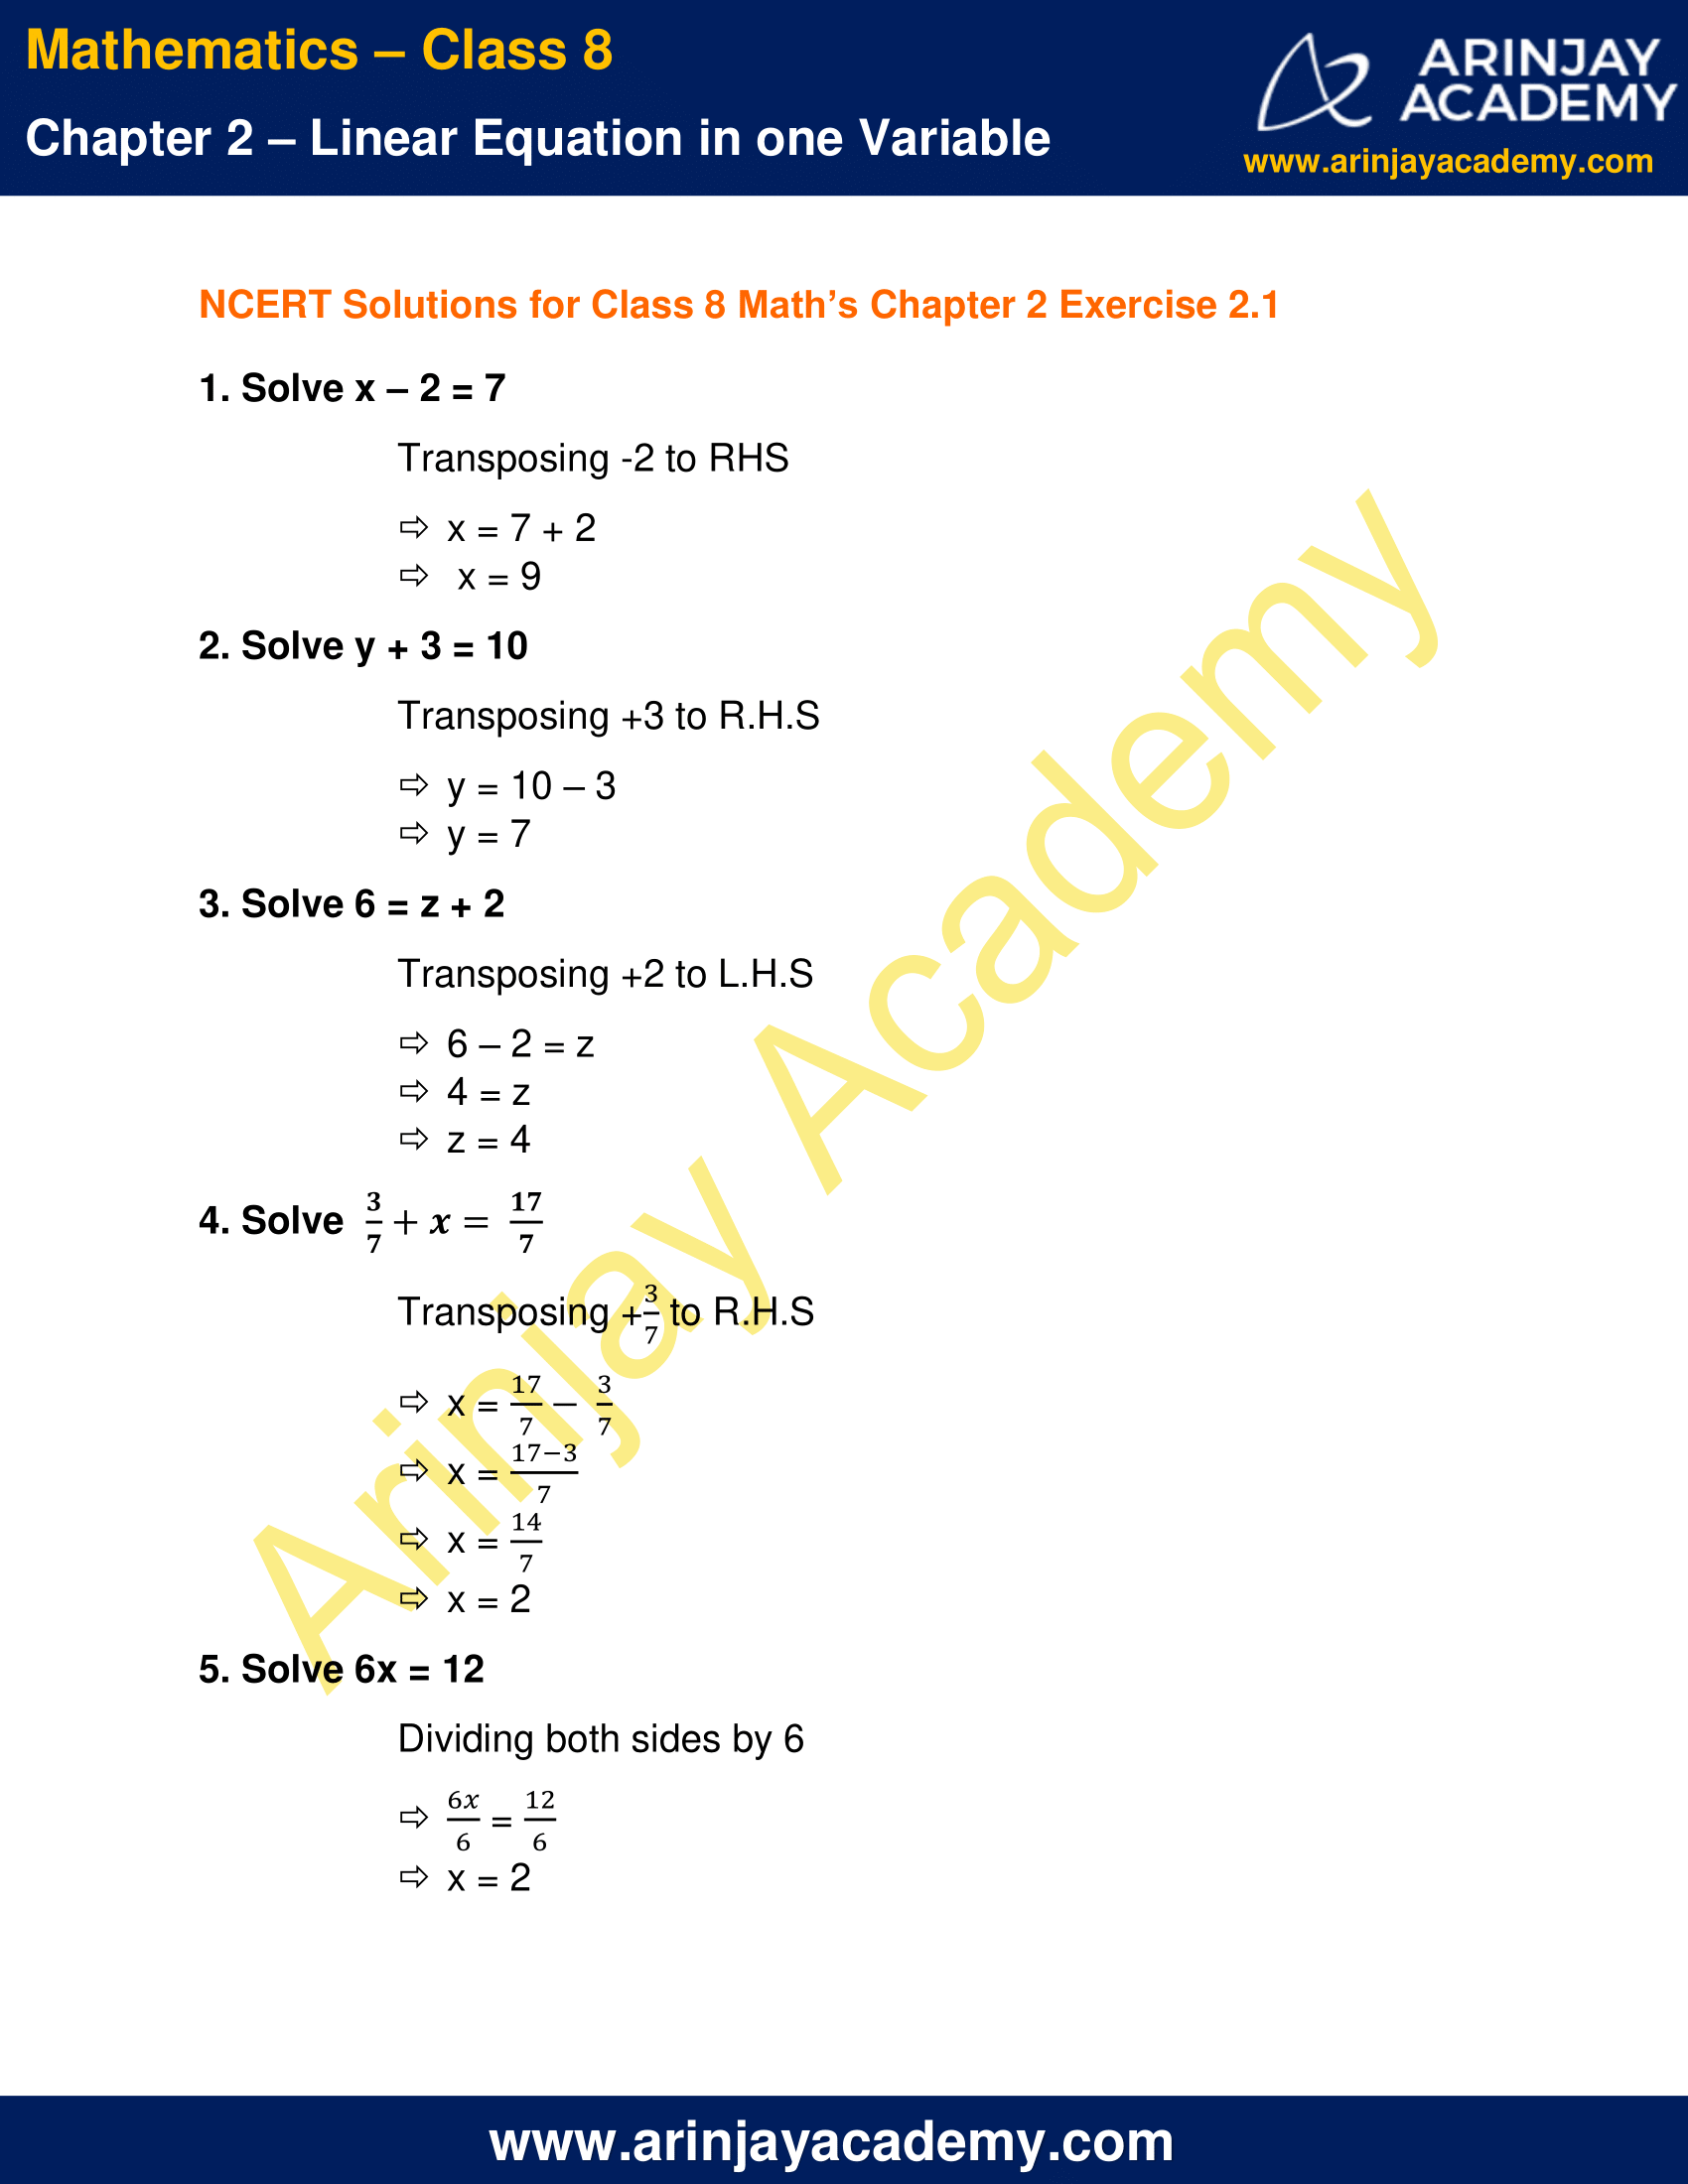 NCERT Solutions for Class 8 Maths Chapter 2 Exercise 2.1 image 1